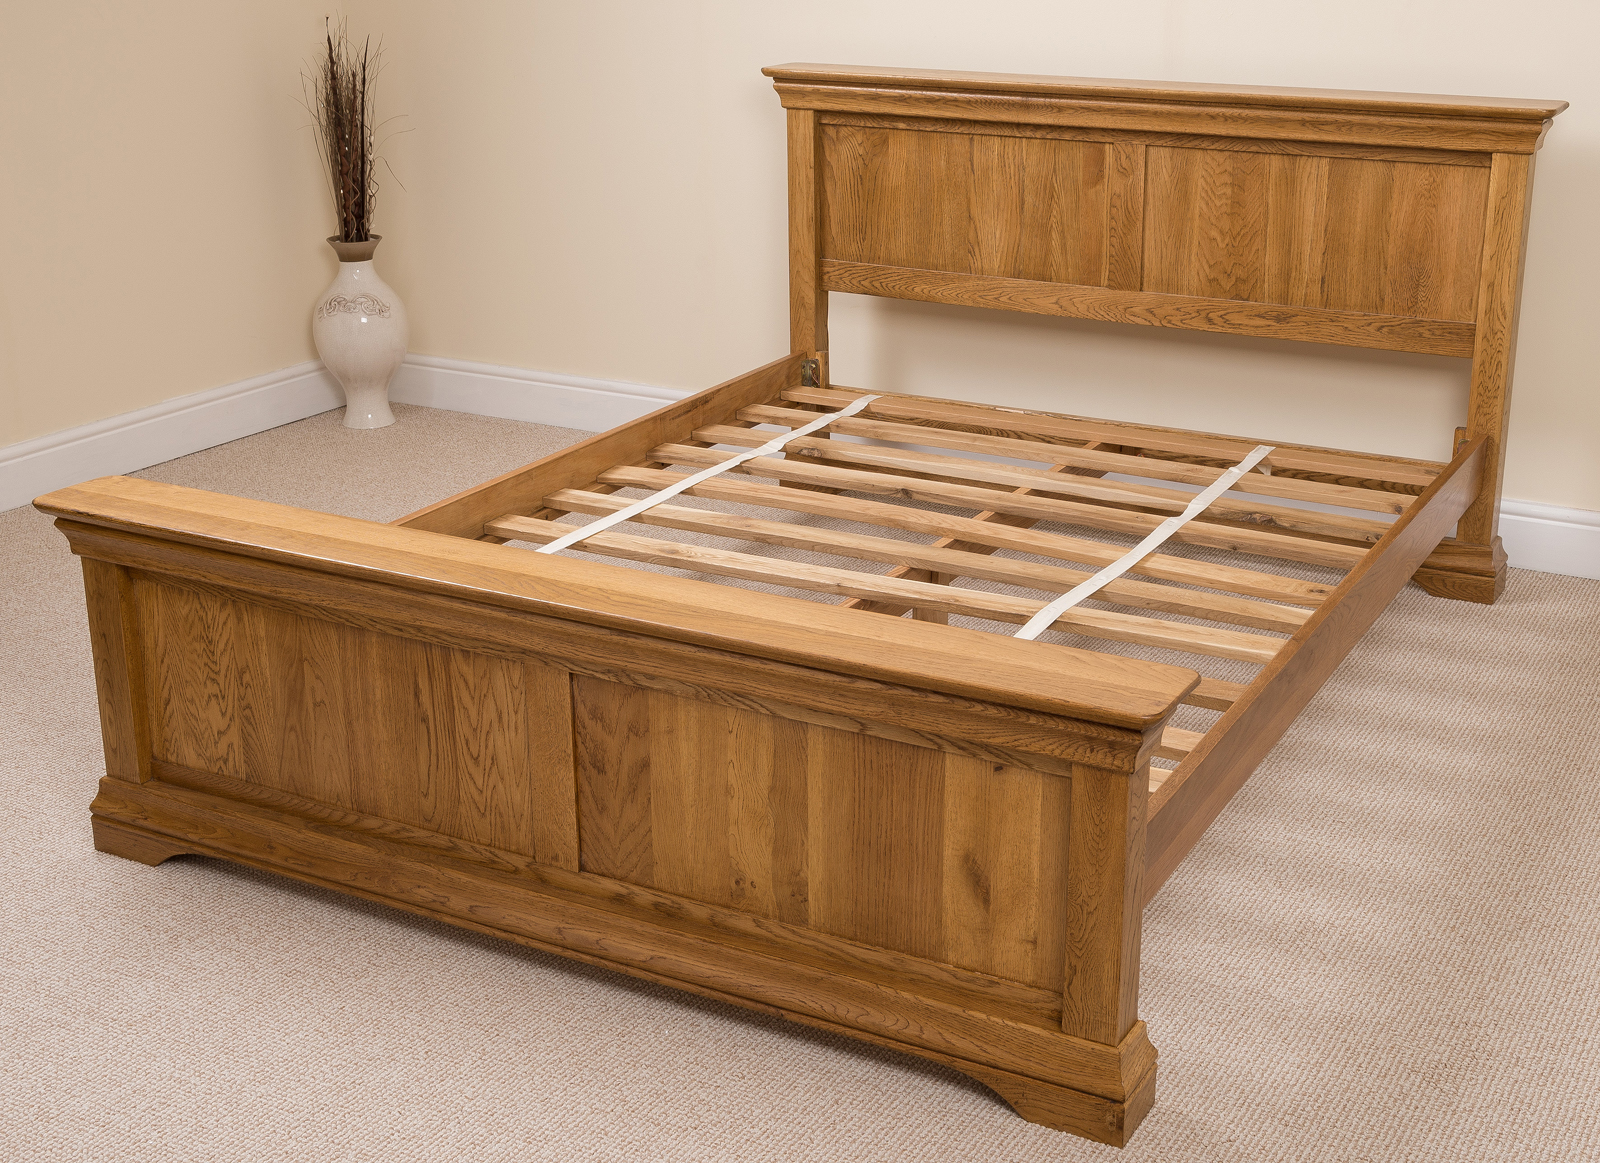 ... about FRENCH RUSTIC SOLID OAK WOOD DOUBLE BED FRAME BEDROOM FURNITURE